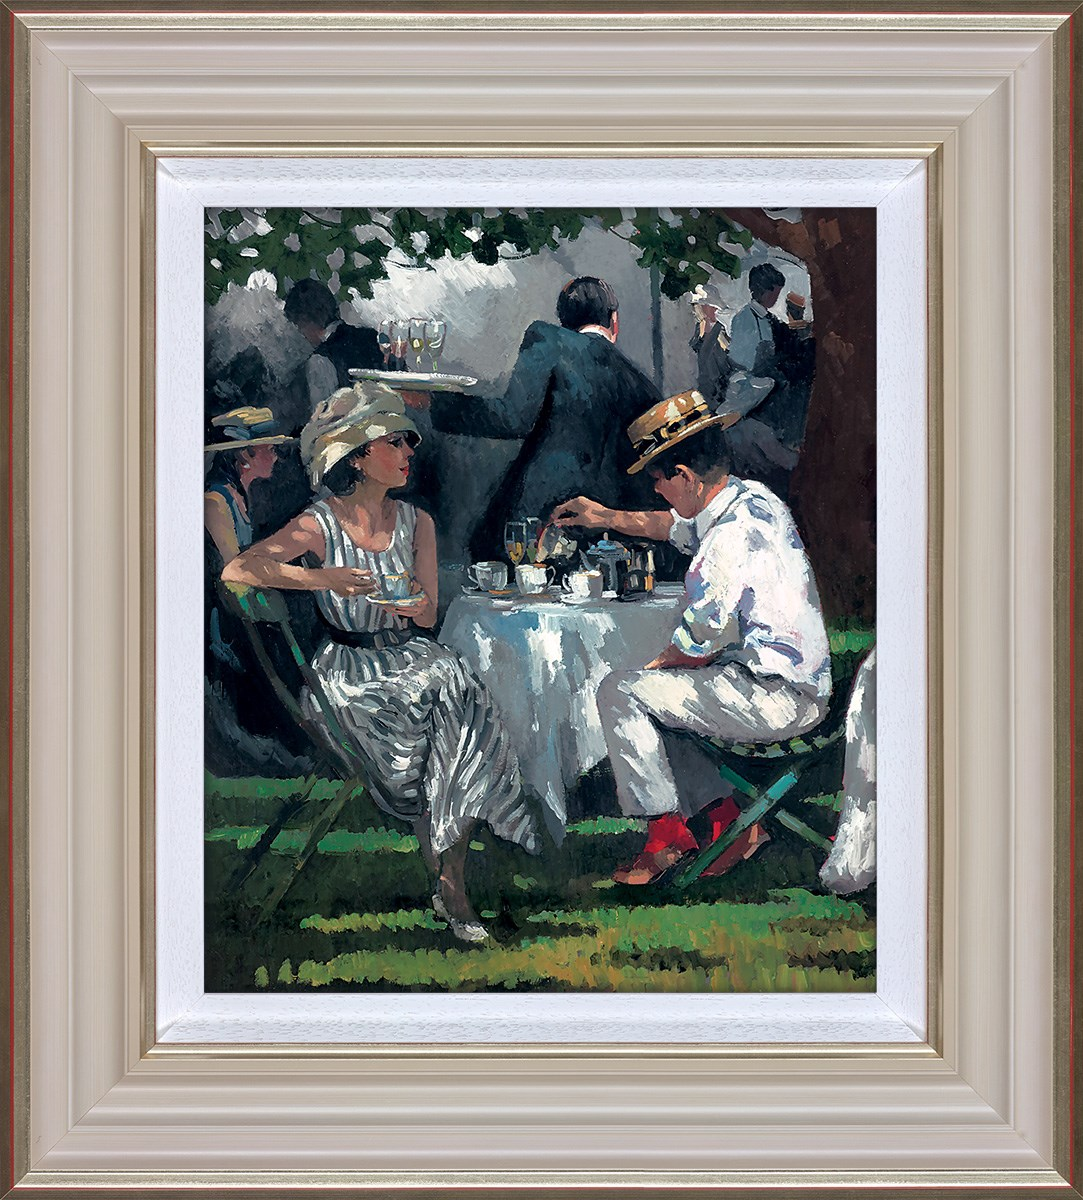 Afternoon Tea by Sherree Valentine Daines